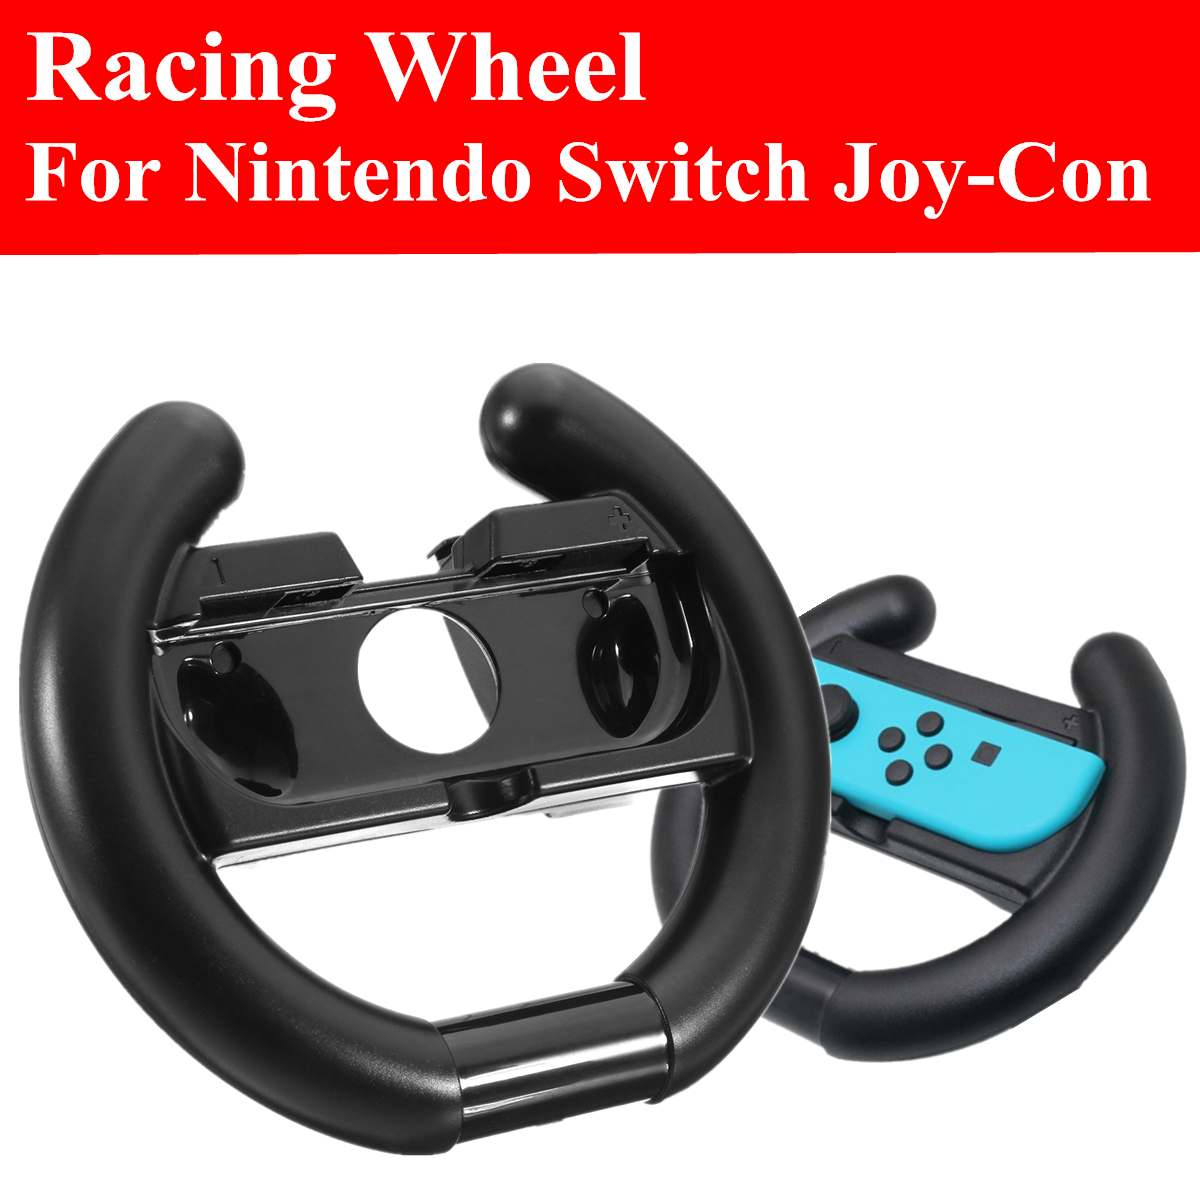 Direction Steering Wheel Hand Grip Handle For Nintend Switch Joy-co Console NS Controller Gamepads Video Racing Games Wheels